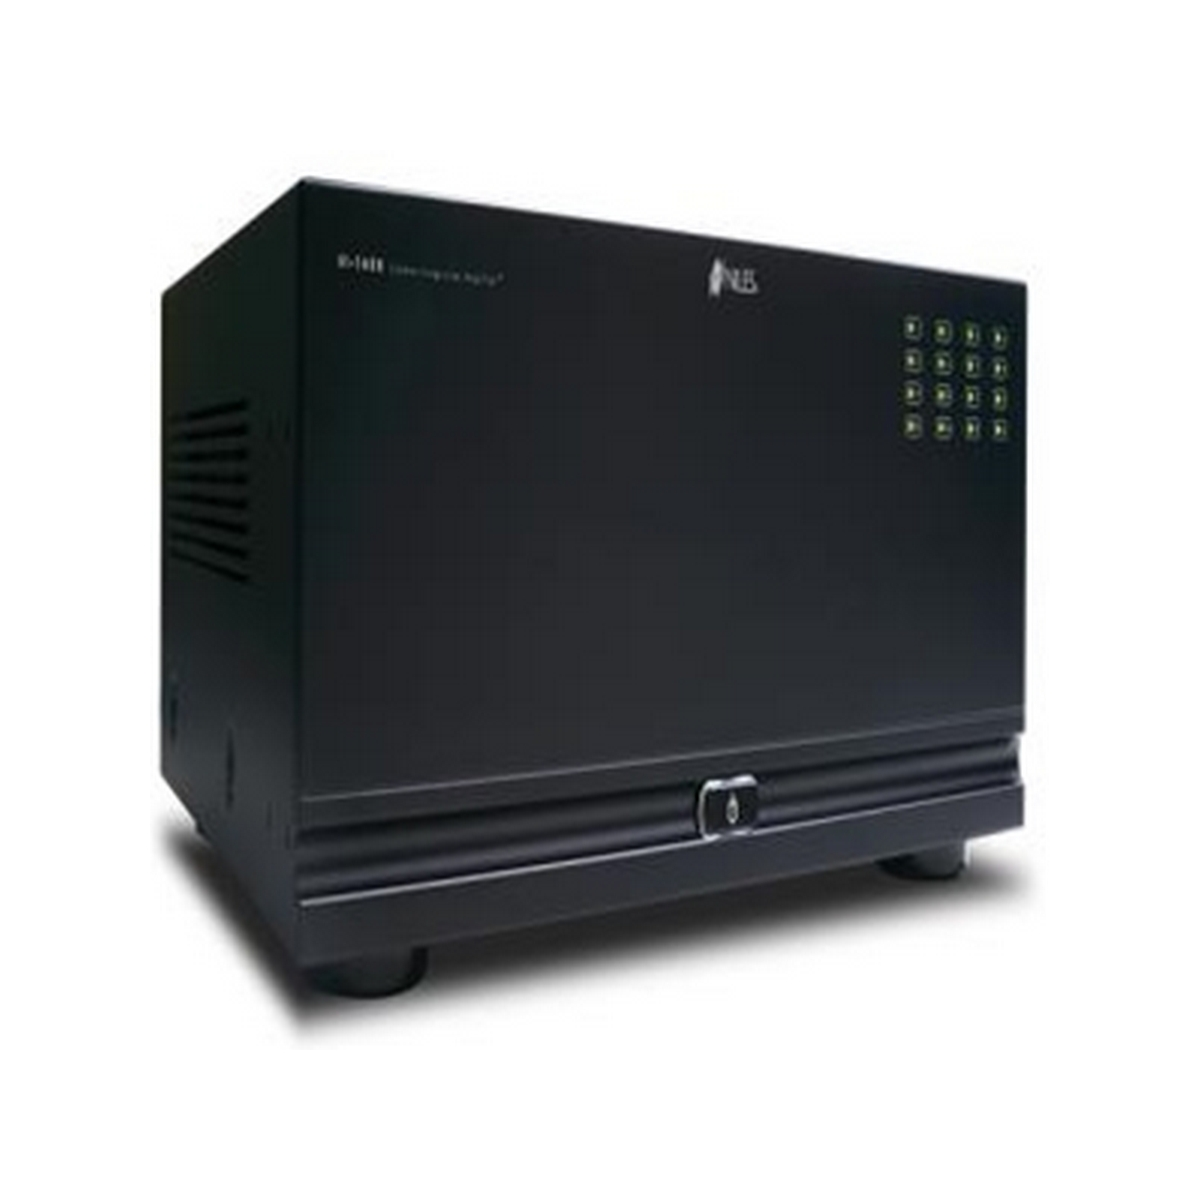 Niles SI-1650 16 Chan, Fully IP Configurable Power Amp; 16 x 50W;  Rack Ears Incl.; 110/240V